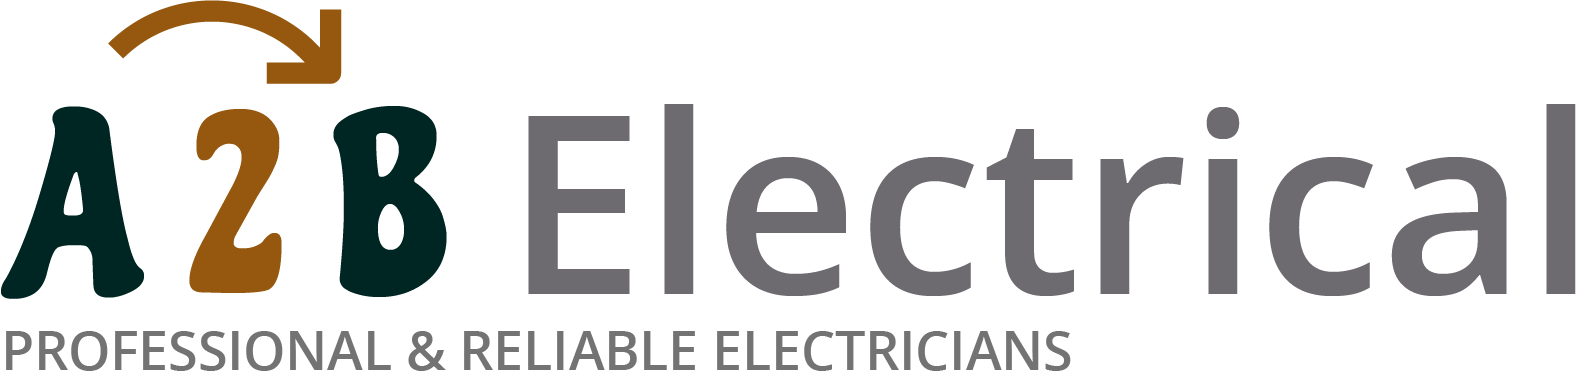 If you have electrical wiring problems in Stansted, we can provide an electrician to have a look for you.